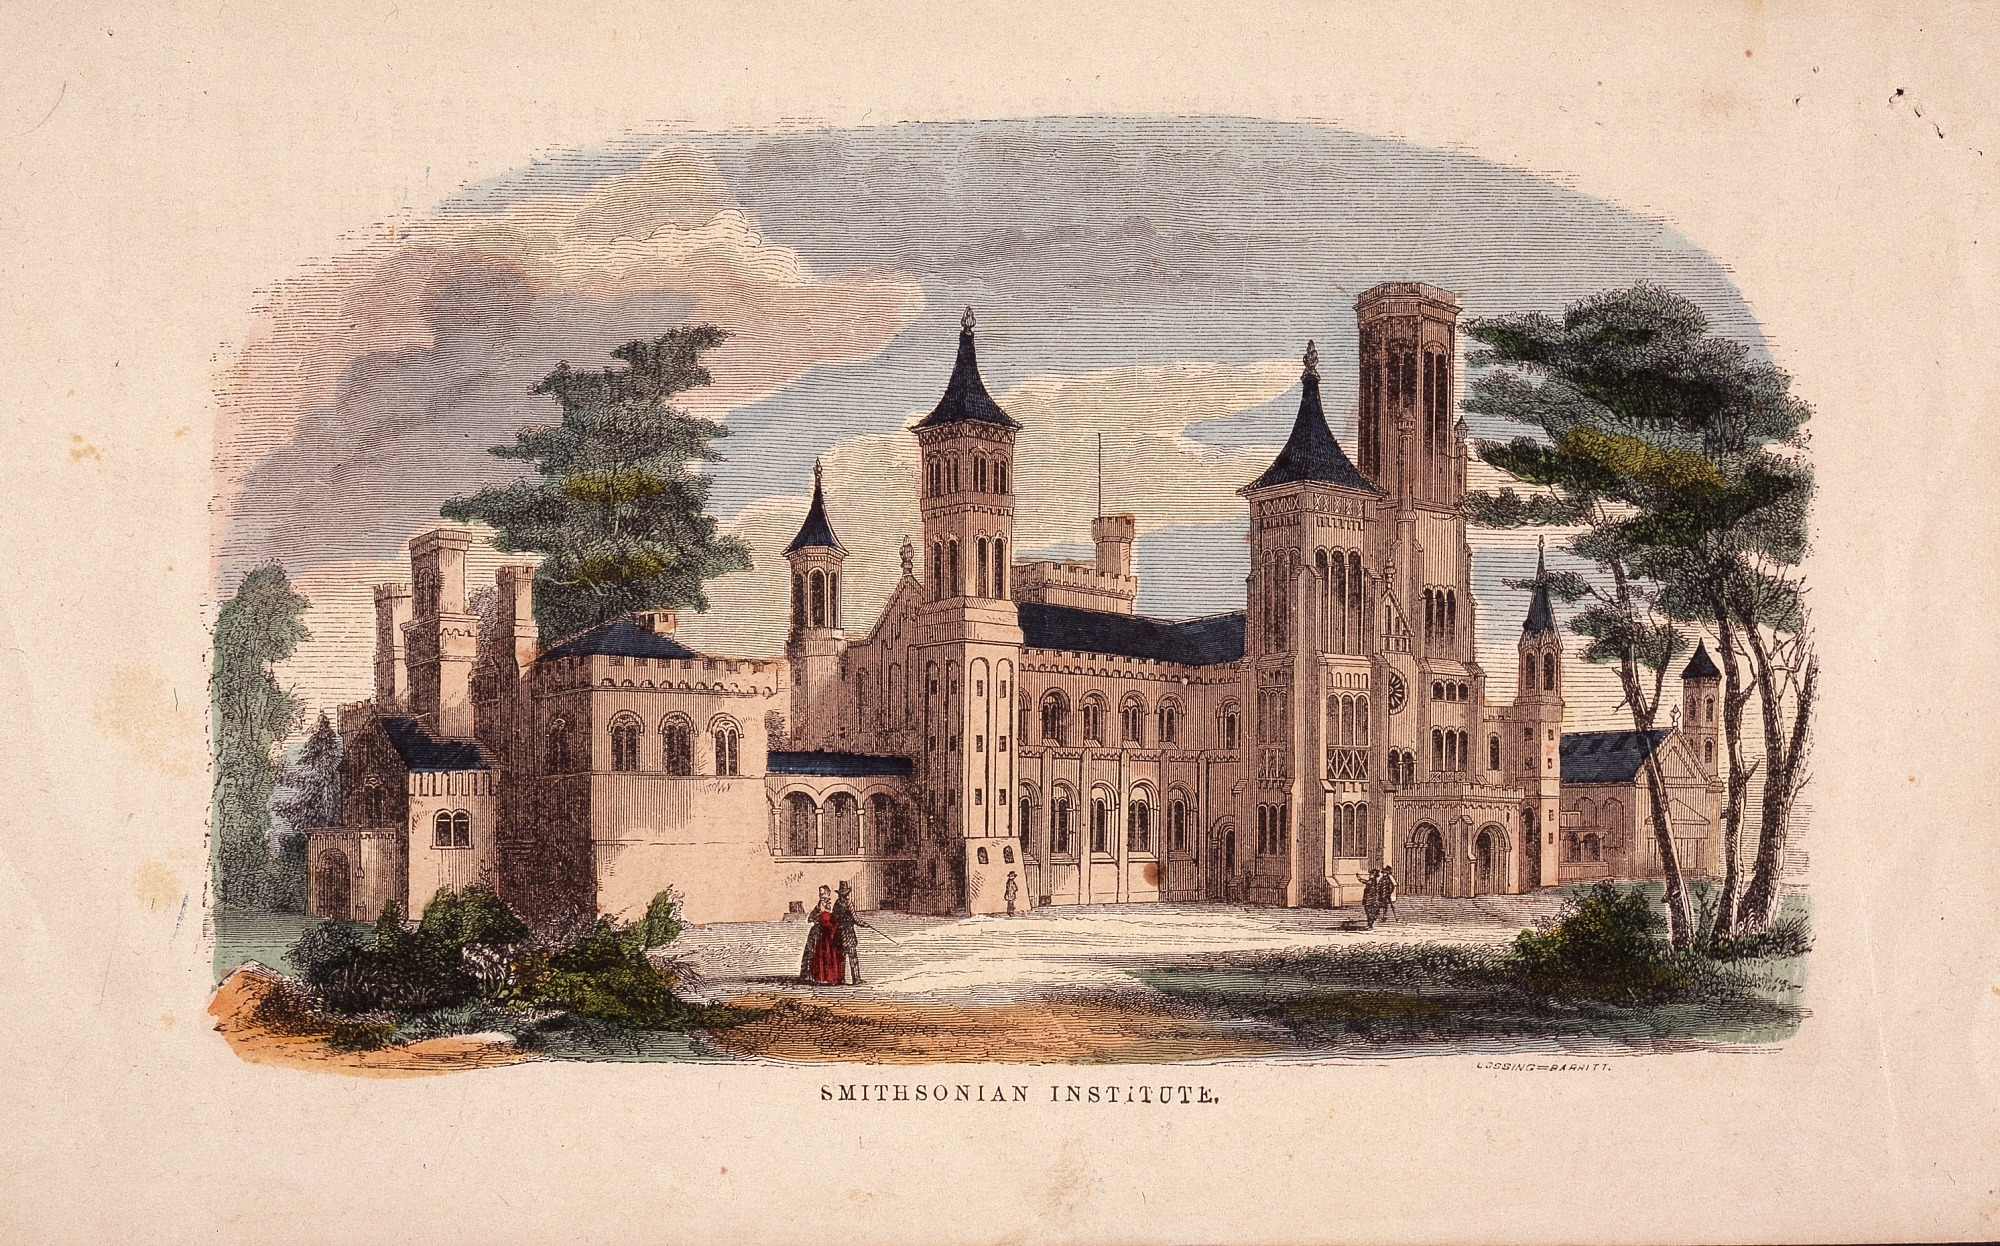 images for Smithsonian Institution Building